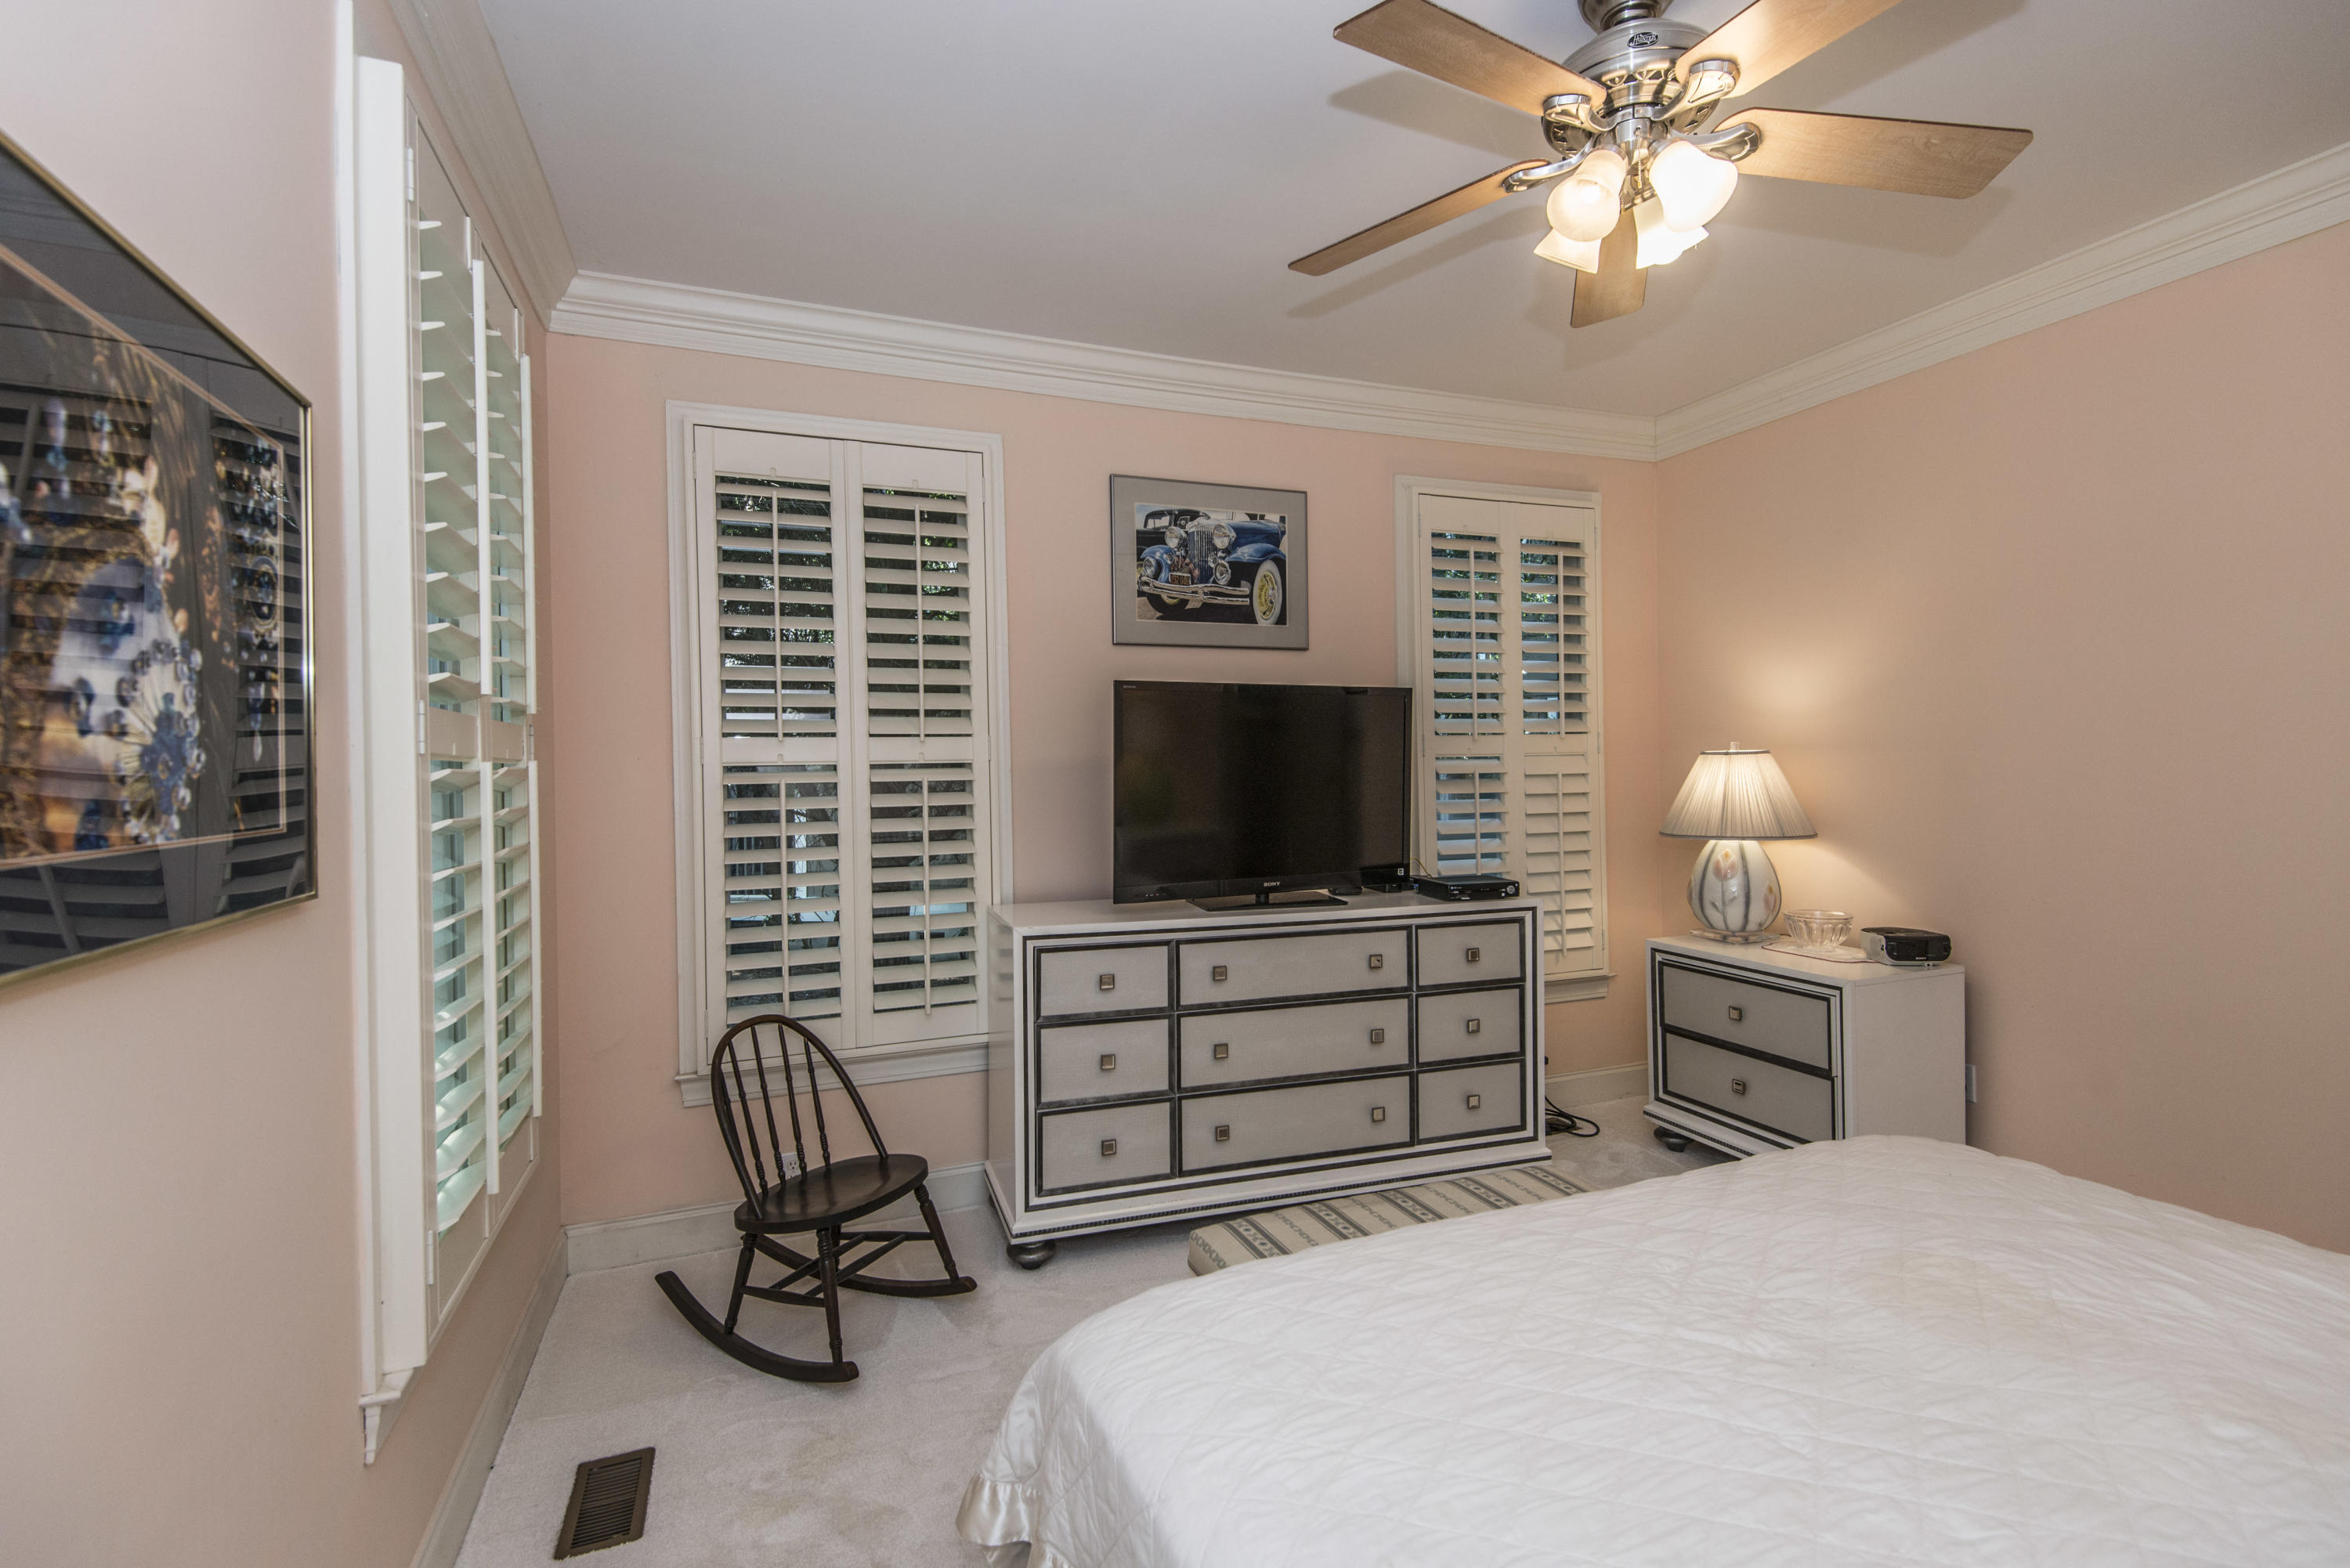 The Villages In St Johns Woods Homes For Sale - 4087 Amy, Johns Island, SC - 4